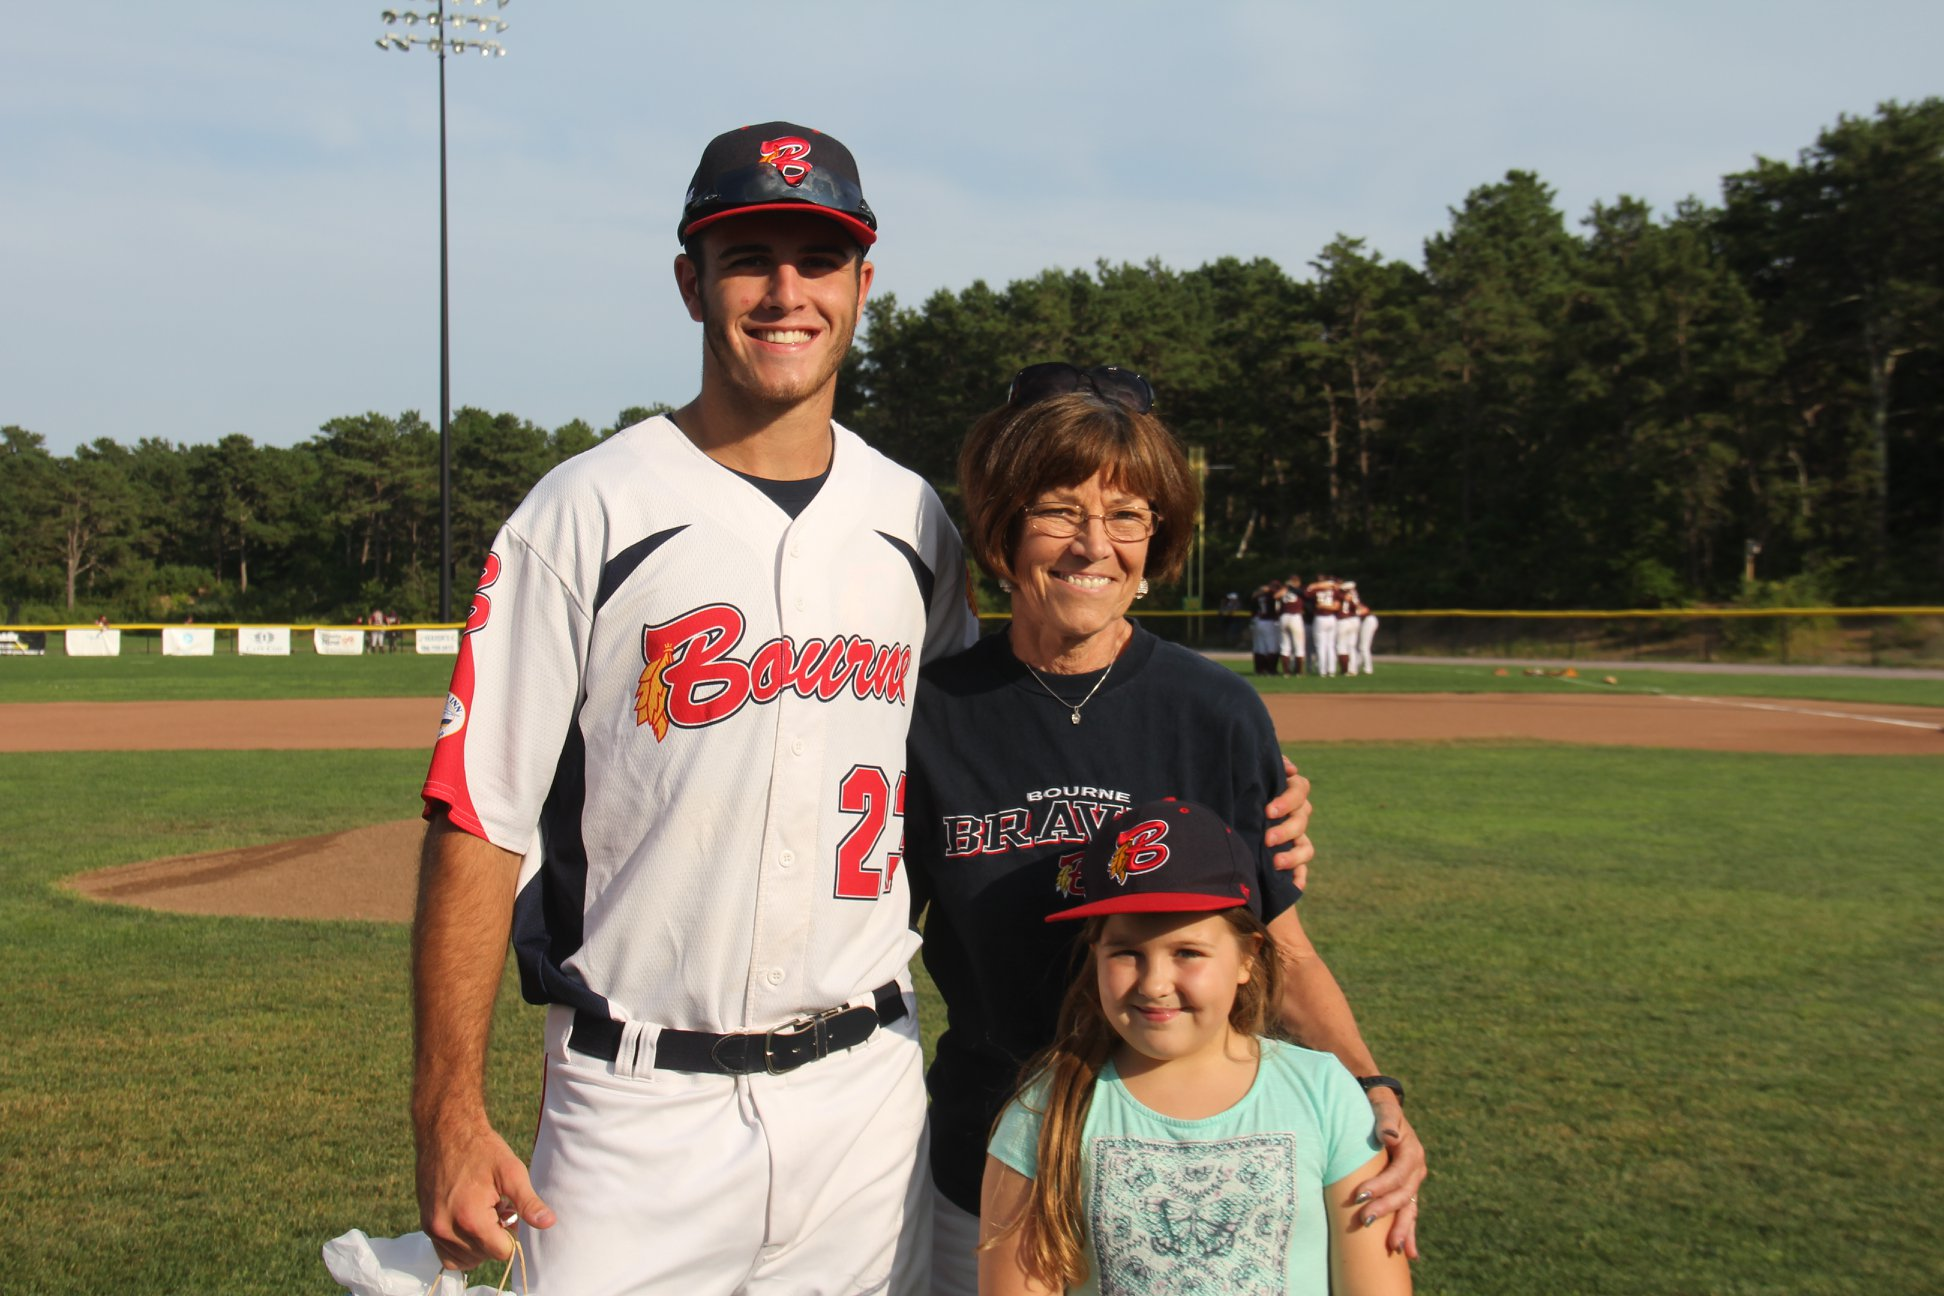 UConn and Bourne infielder Anthony Prato with his host family on Host Family Appreciation Night in the Cape Cod Baseball League (Bourne Braves on Facebook)